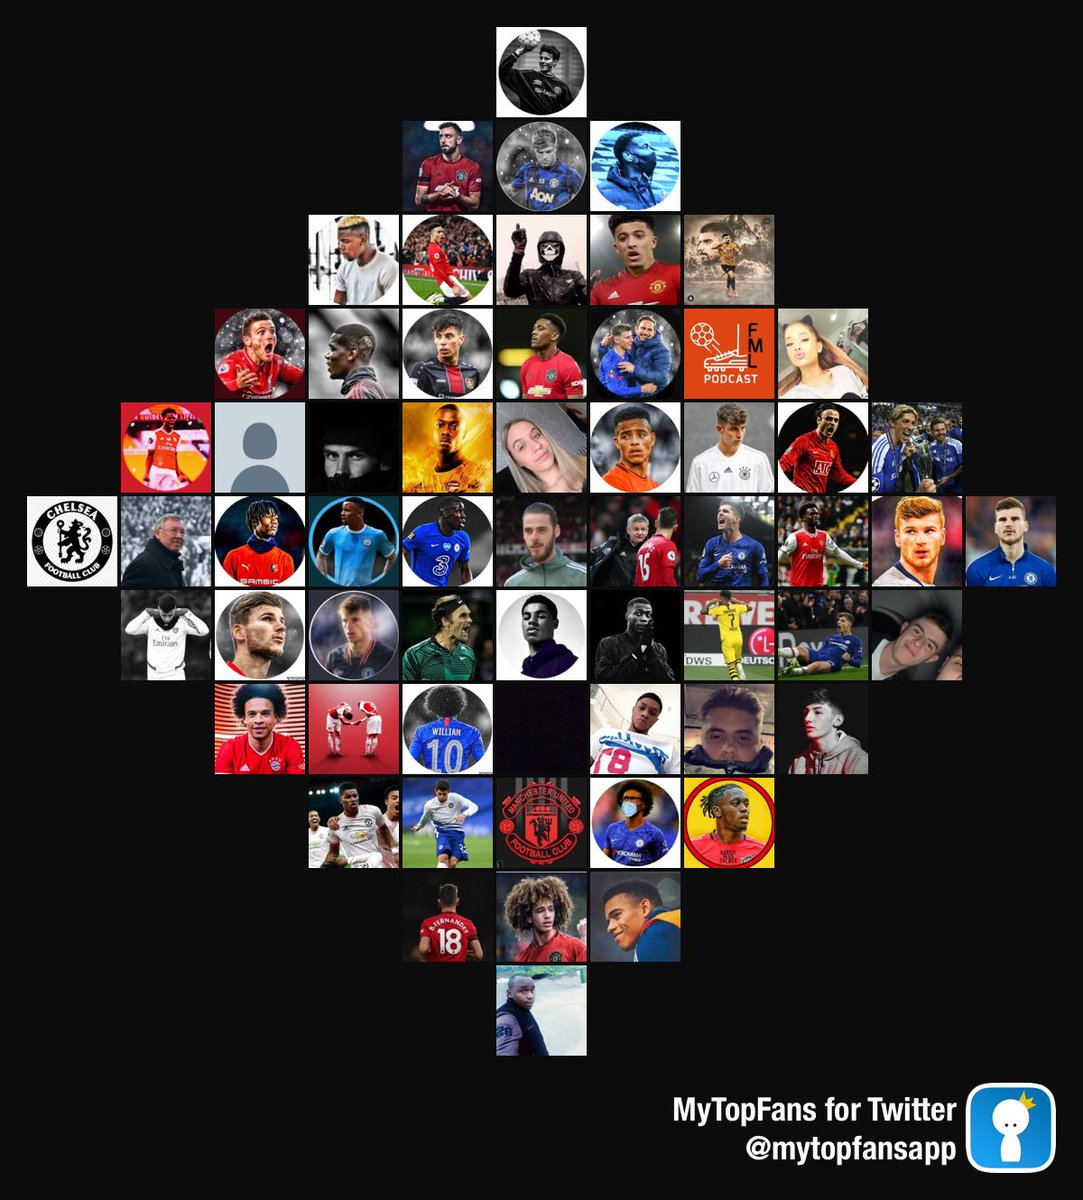 My top amazing fans #mytopfans #StayHome via https://t.co/ie7PMwmGY8 Do you see yourself? @SteelGhastly @BavithranH @Utd_Pedro @Forch_Aidan @PrimePioche @joecleanMUFC @Articz_ @JohnRowely @wwfc_neves_ @OliverLFC4 https://t.co/uJeCdCKFj4